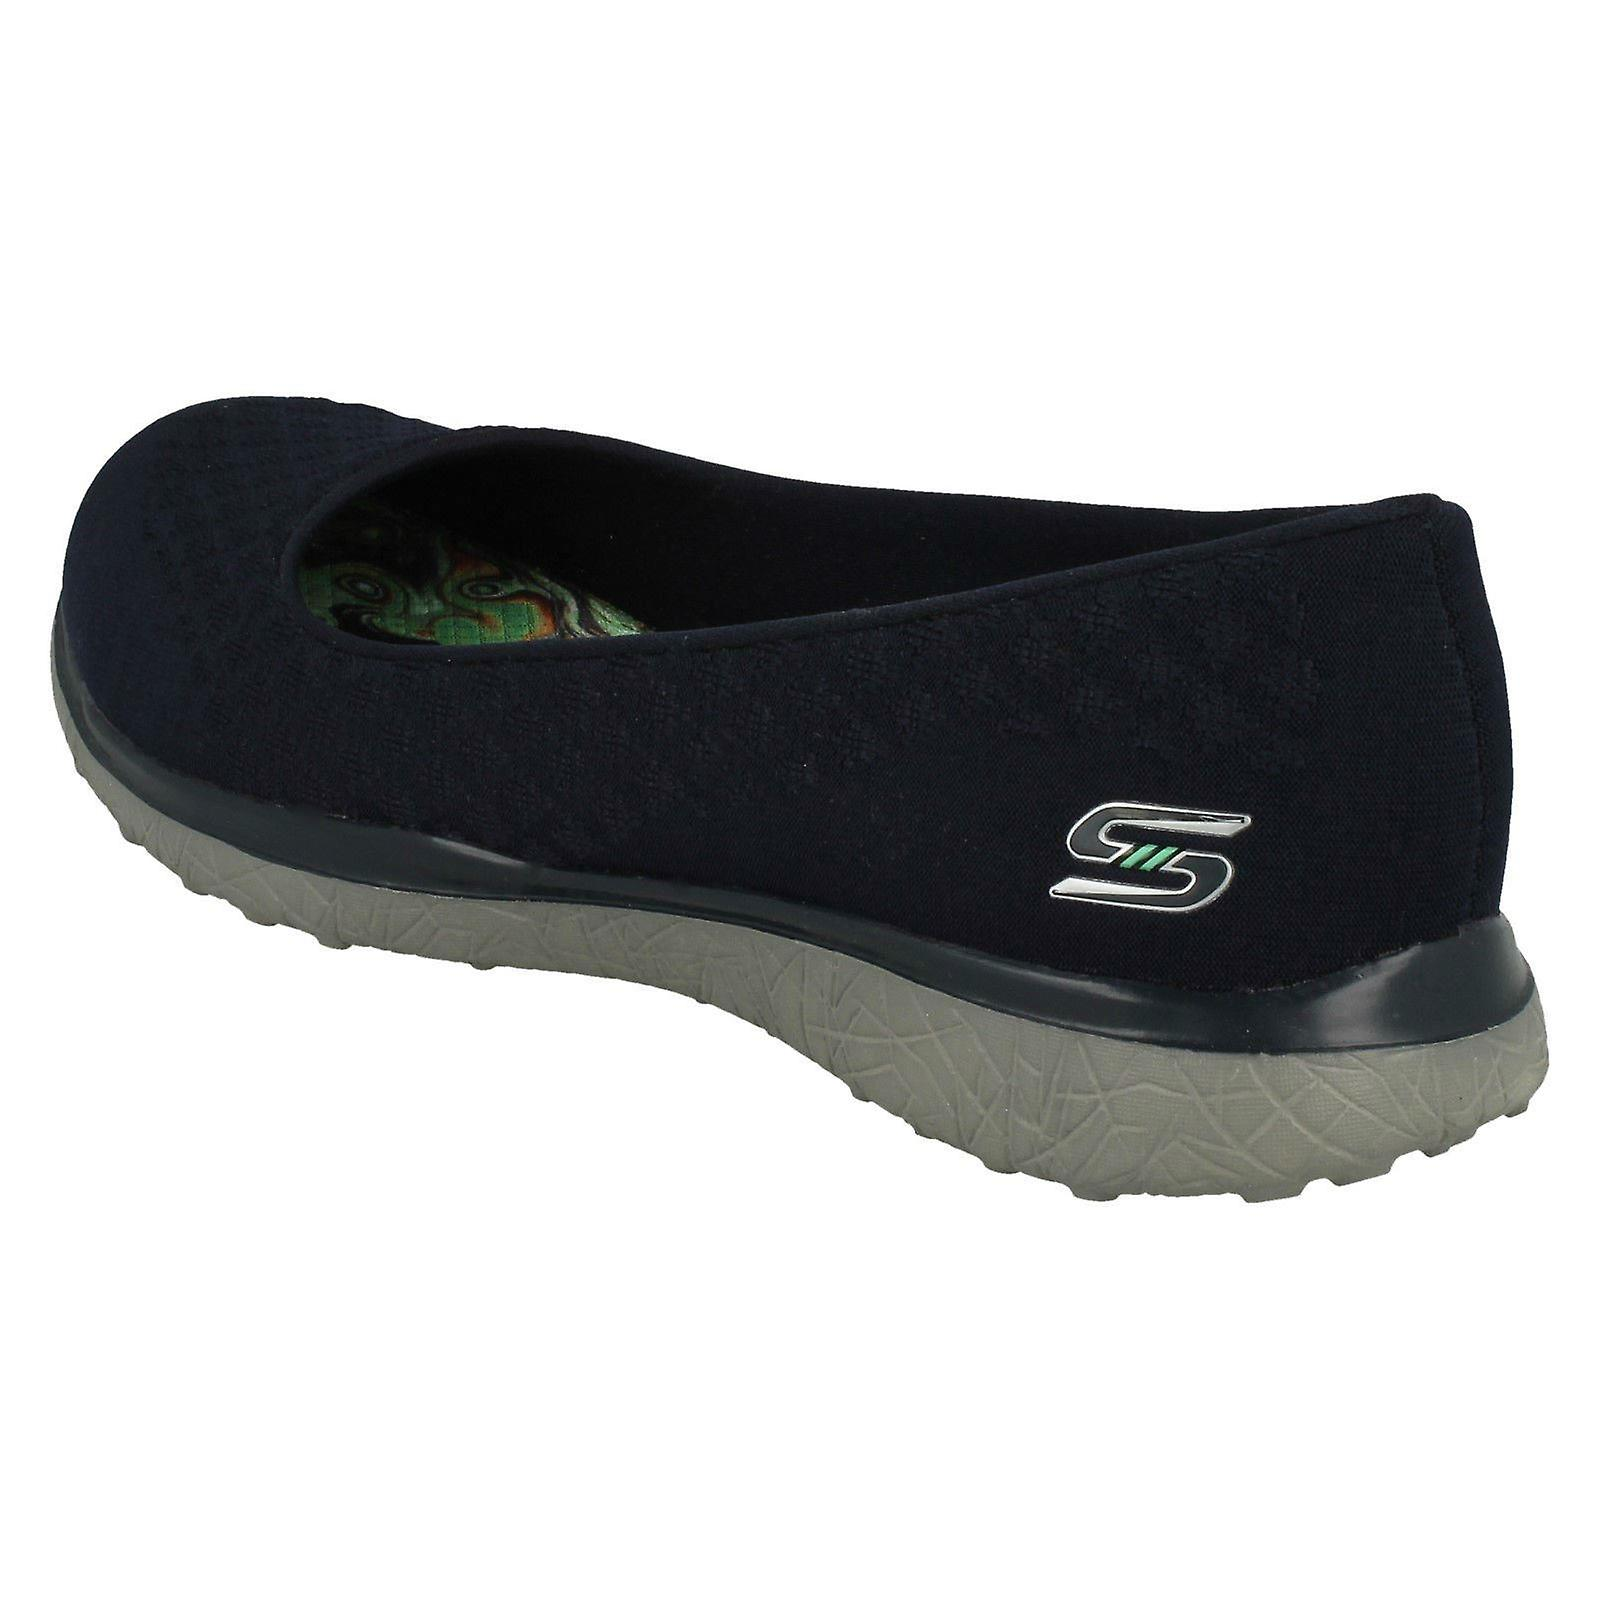 Ladies Skechers Memory Foam Shoes One Up 23312 Navy Textile UK Size 5 EU Size 38 US Size 8